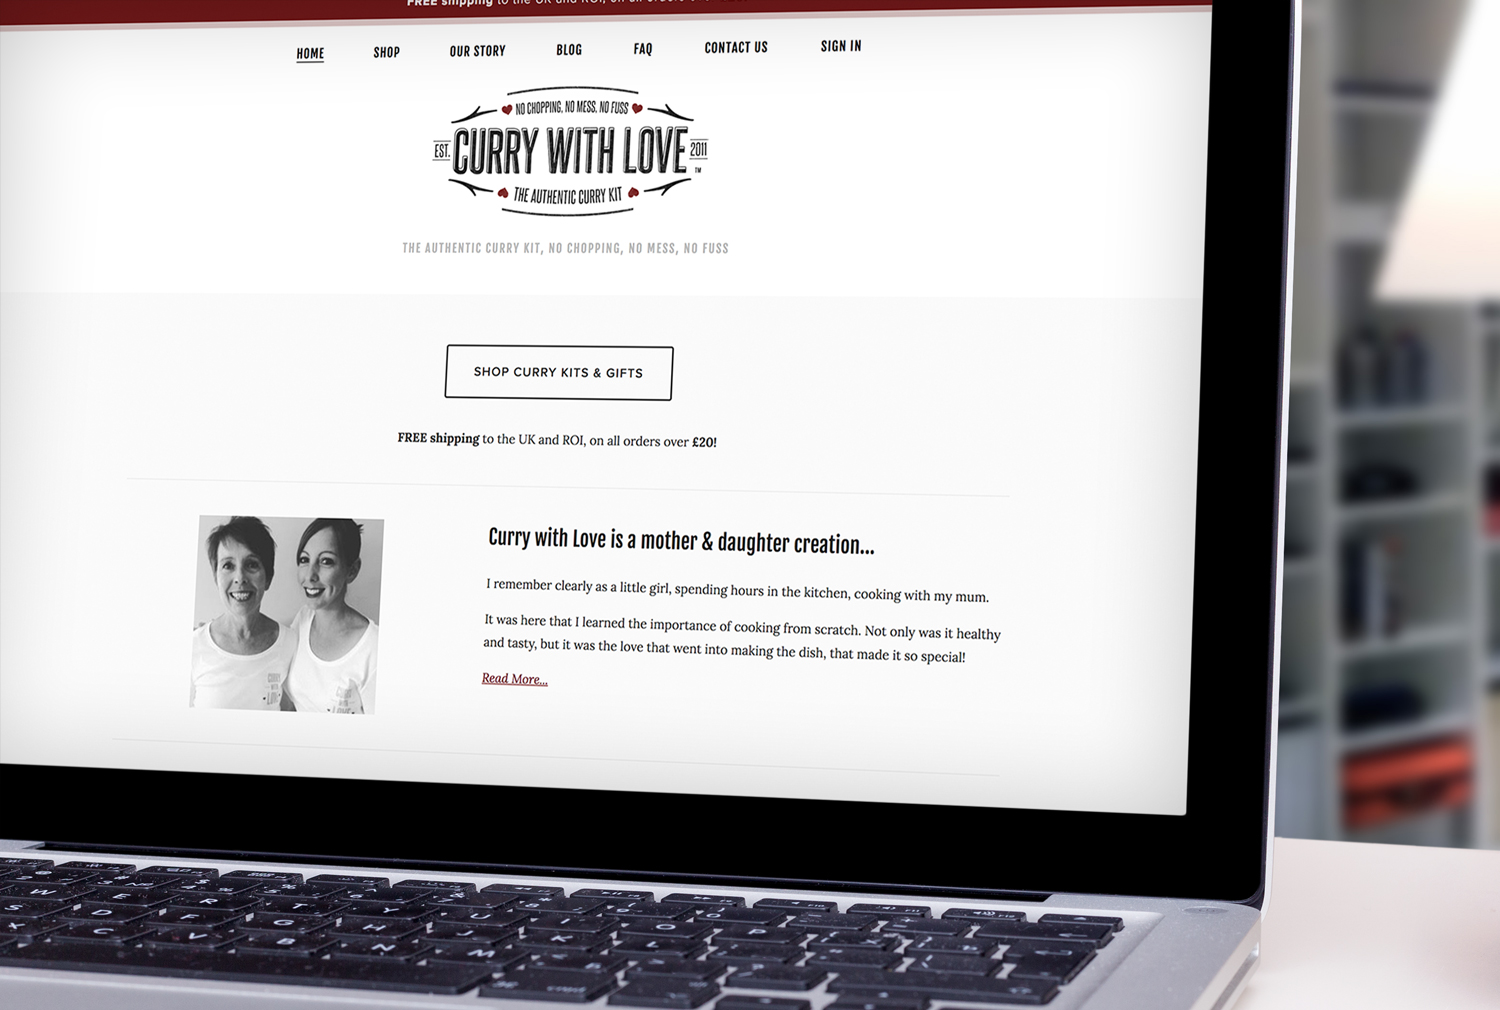 curry-with-love-website-design-1.2.jpg